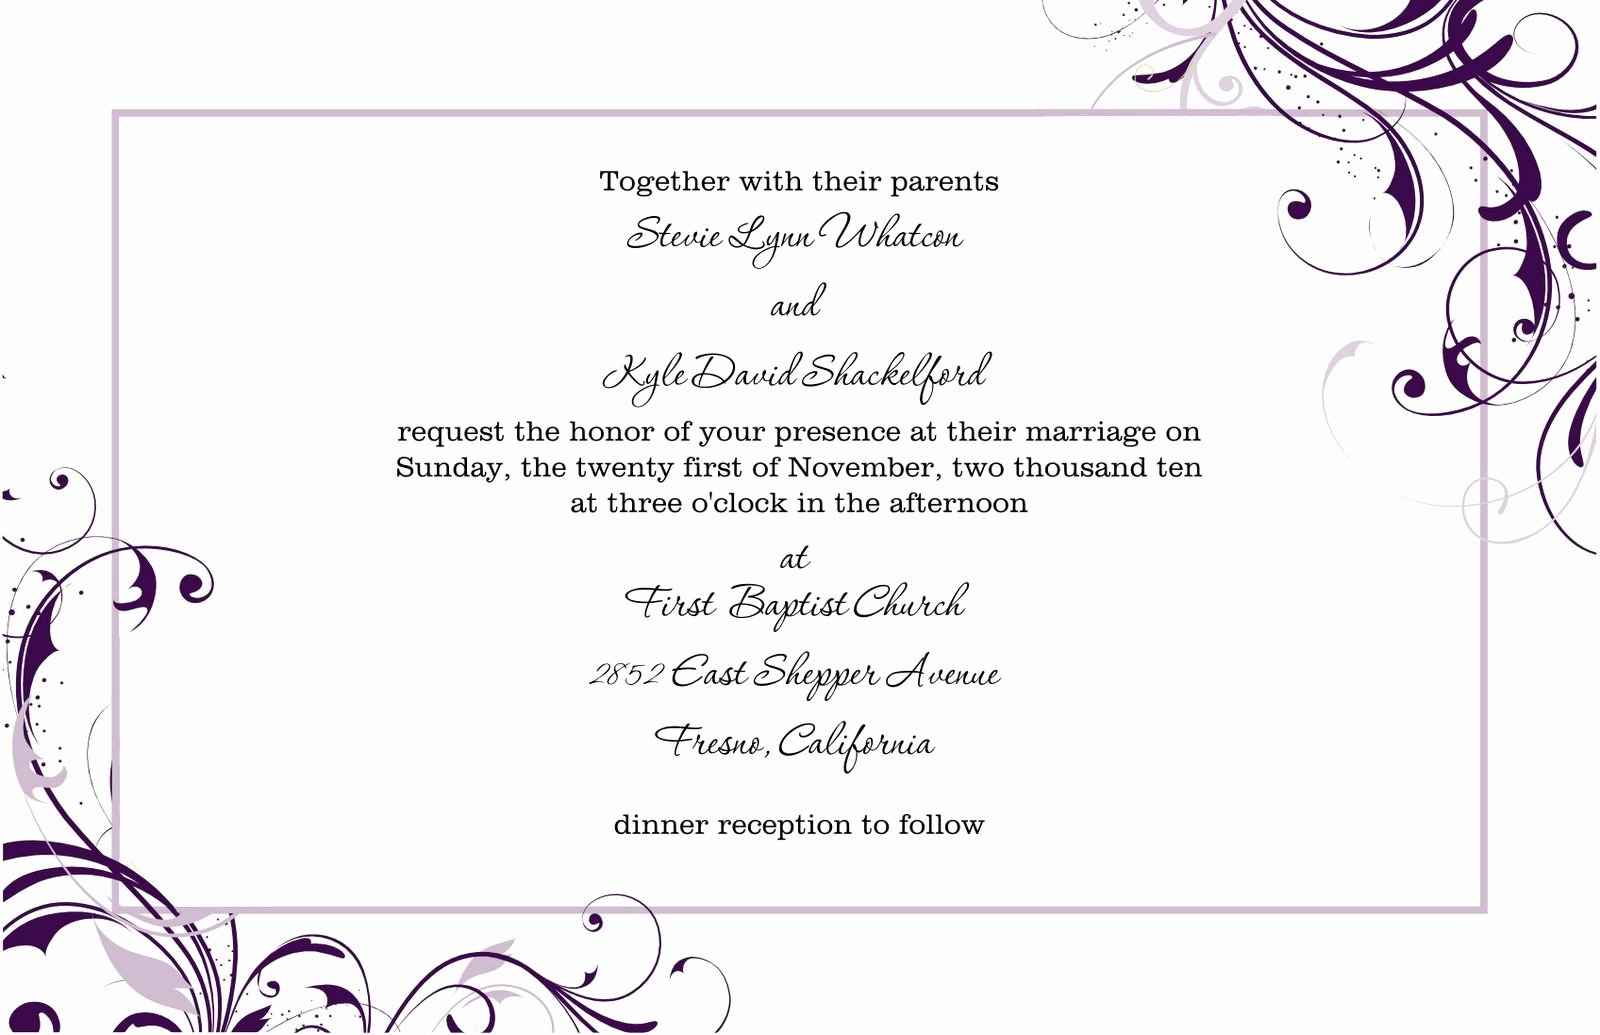 Word Template for Invitations Elegant Pin by Marina On Wedding Invitation Letter In 2019